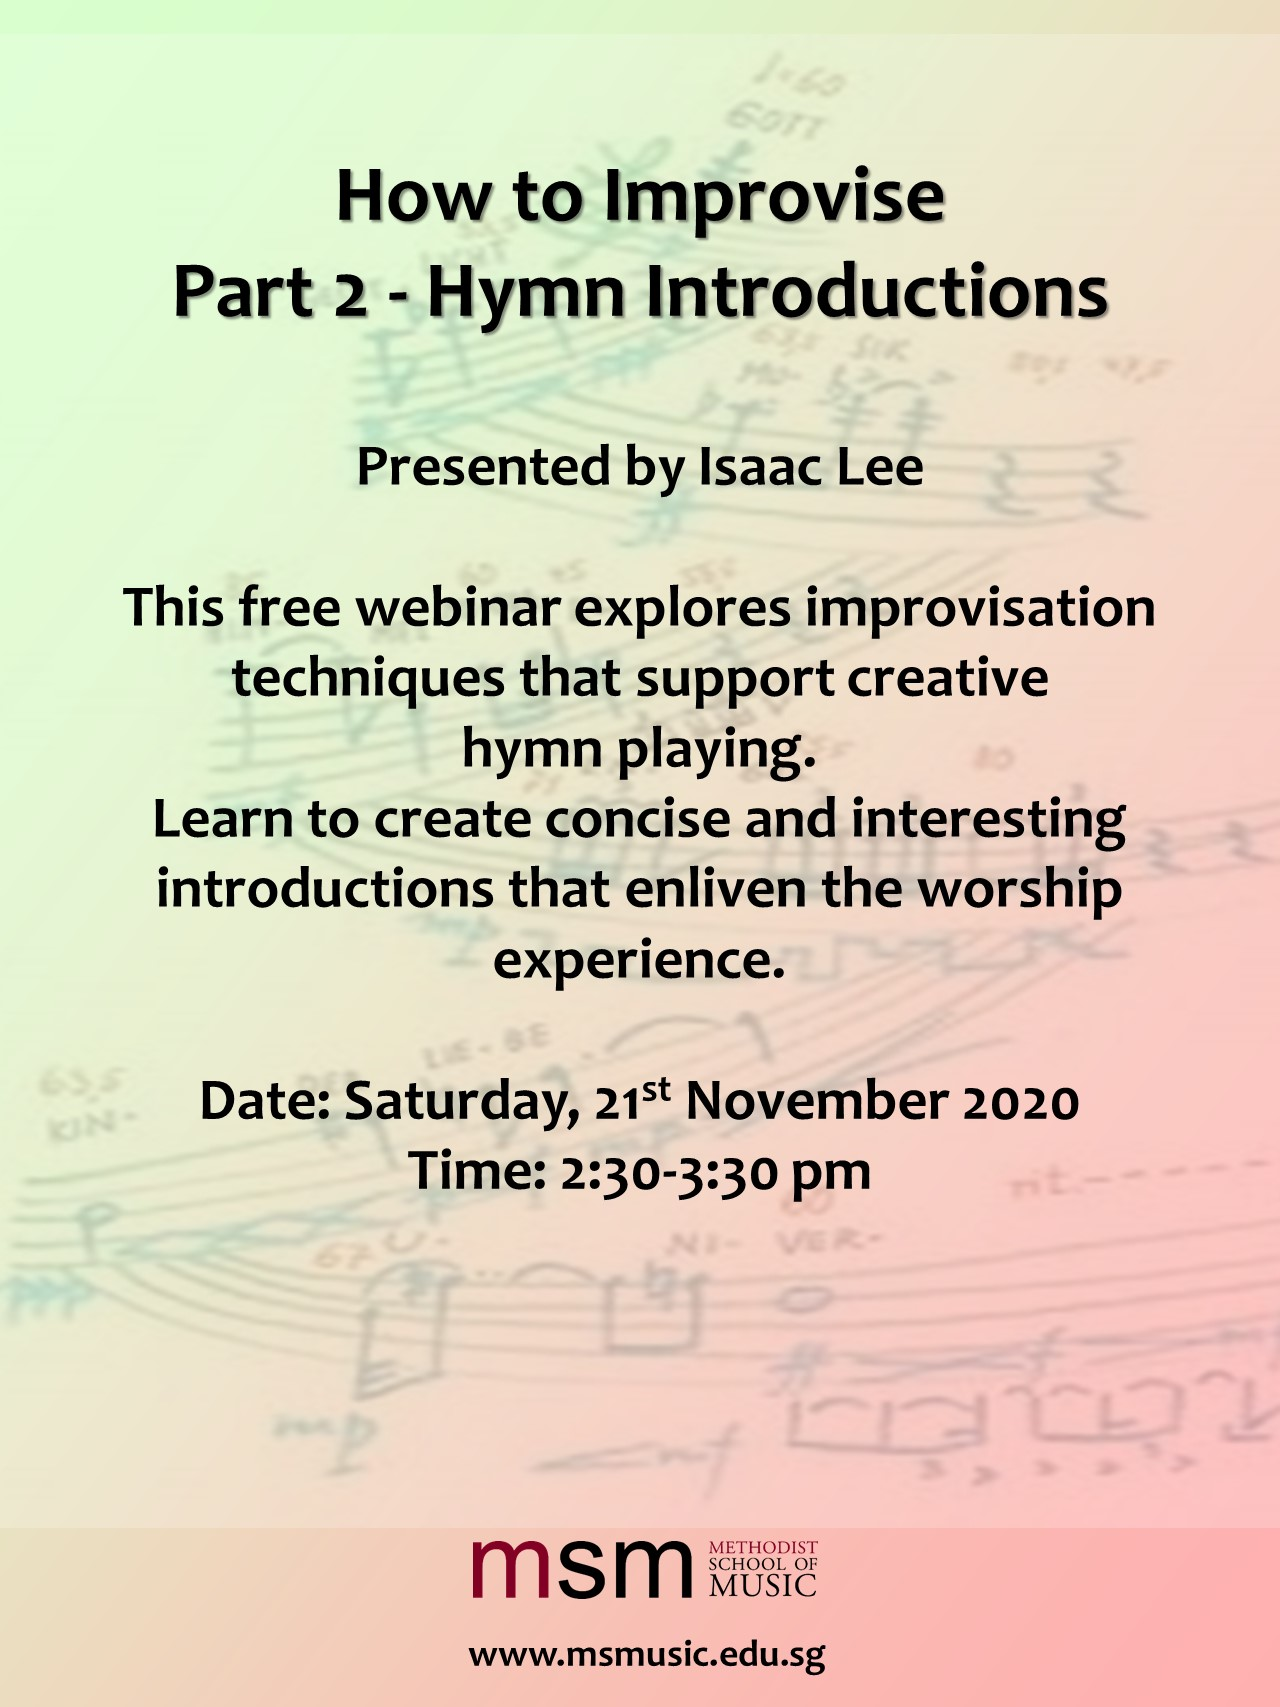 How to Improvise Part 2 – Hymn Introductions